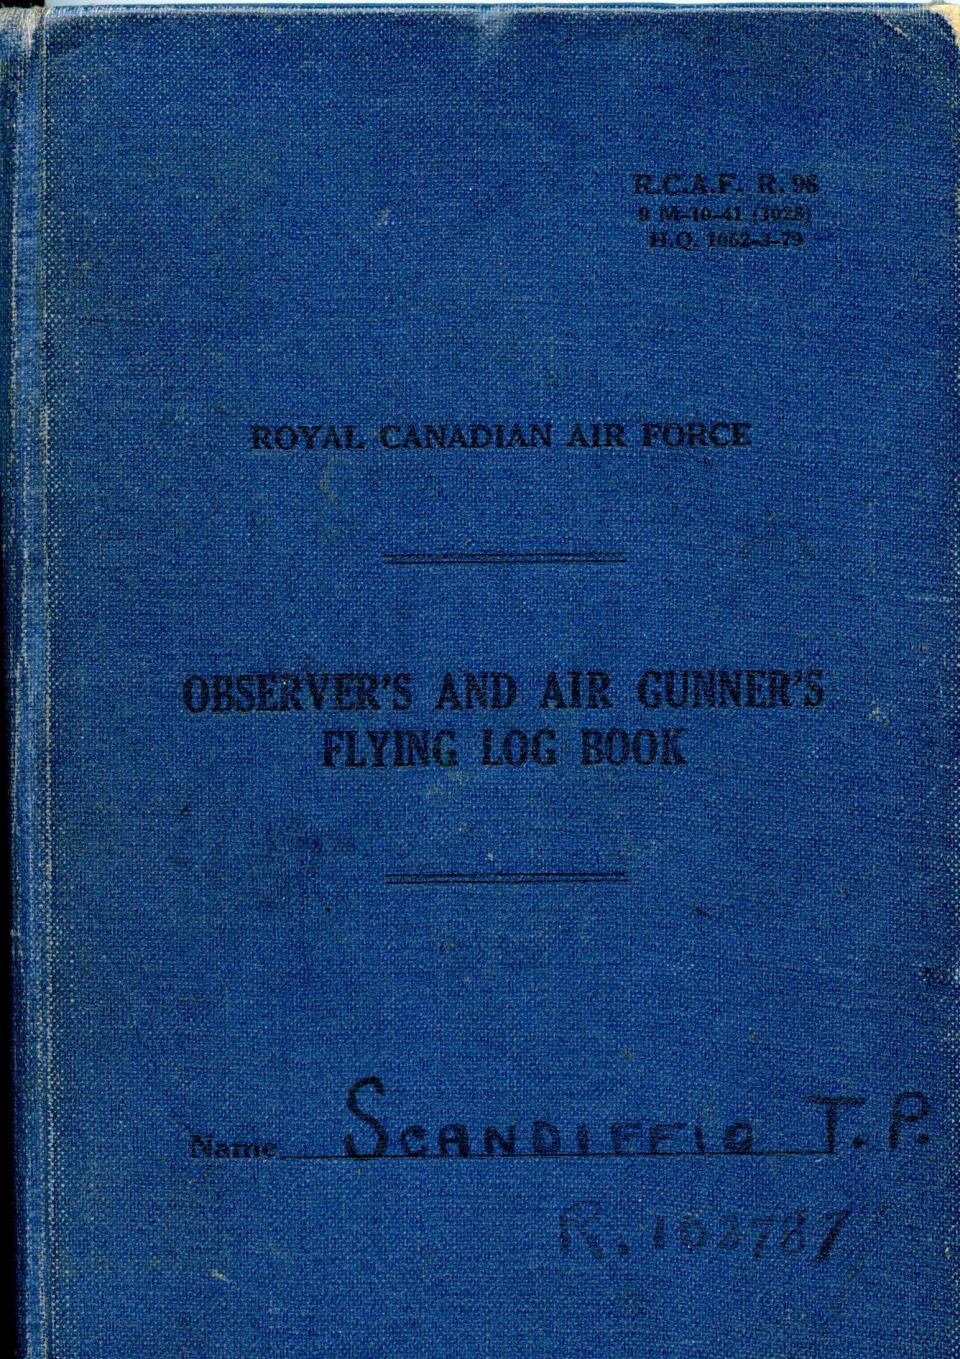 Thomas Scandiffio, Gunner Logbook, cover